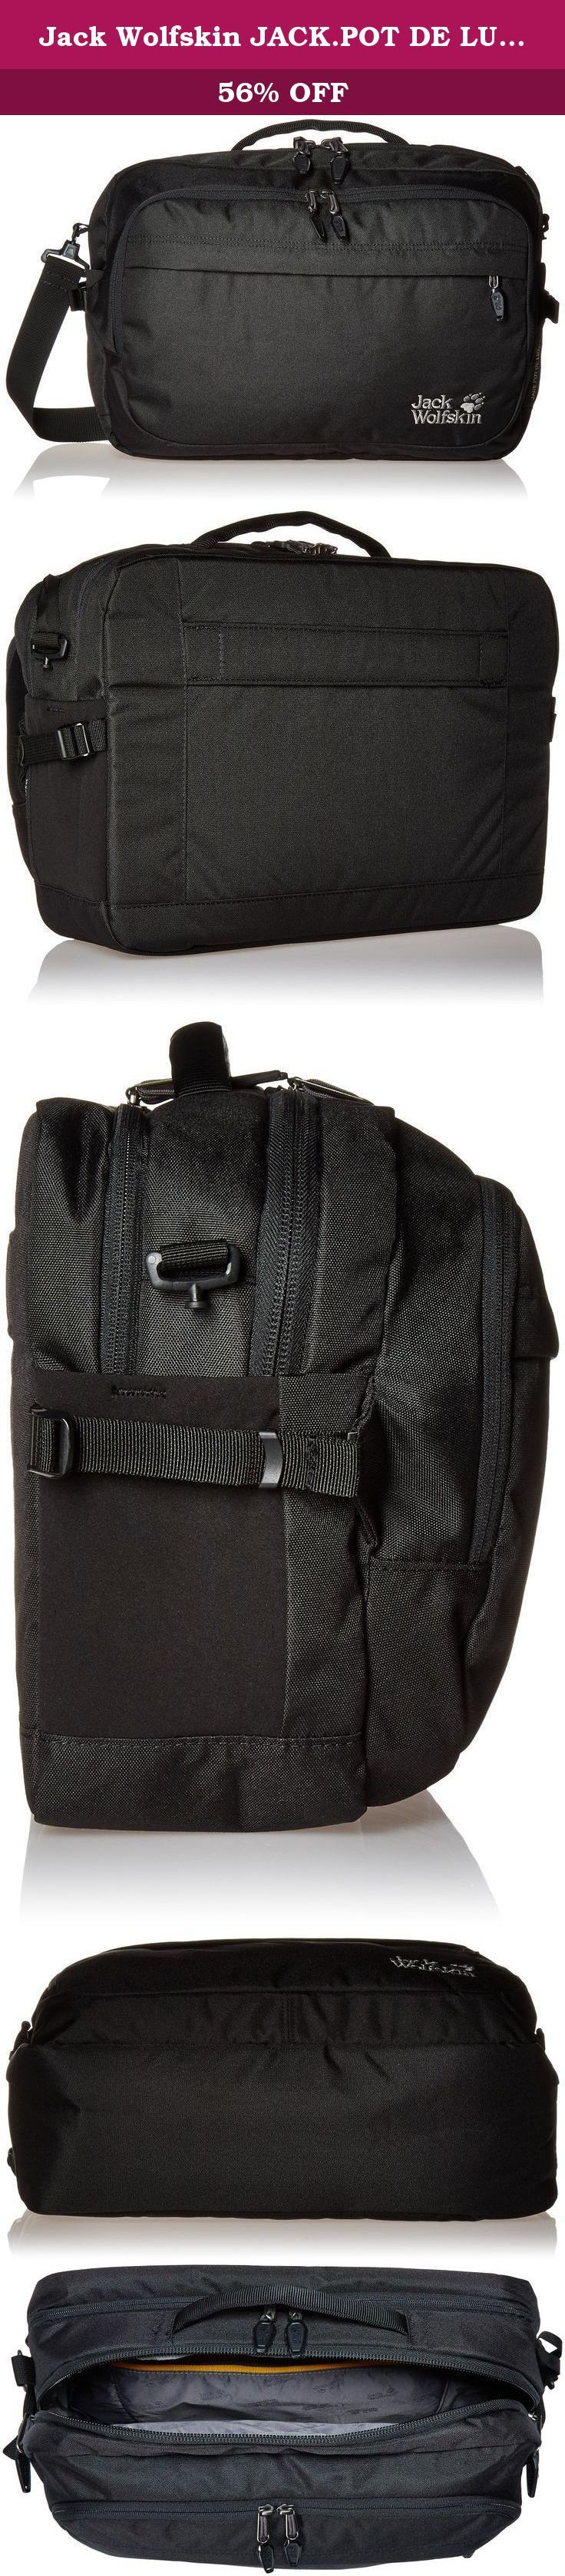 Jack Wolfskin JACK.POT DE LUXE Rucksack, Black, 20 L. Everything you need for the office. The jack.Pot de luxe bag is a practical business bag with plenty of stowage options and lots of practical features. It's particularly useful when you need to carry your electronic equipment with you. Tablet, laptop and accessories can all be stashed in compartments specifically designed for them. The laptop bag and accessories pouch are both padded and removable. Small items, a water bottle etc. Can…